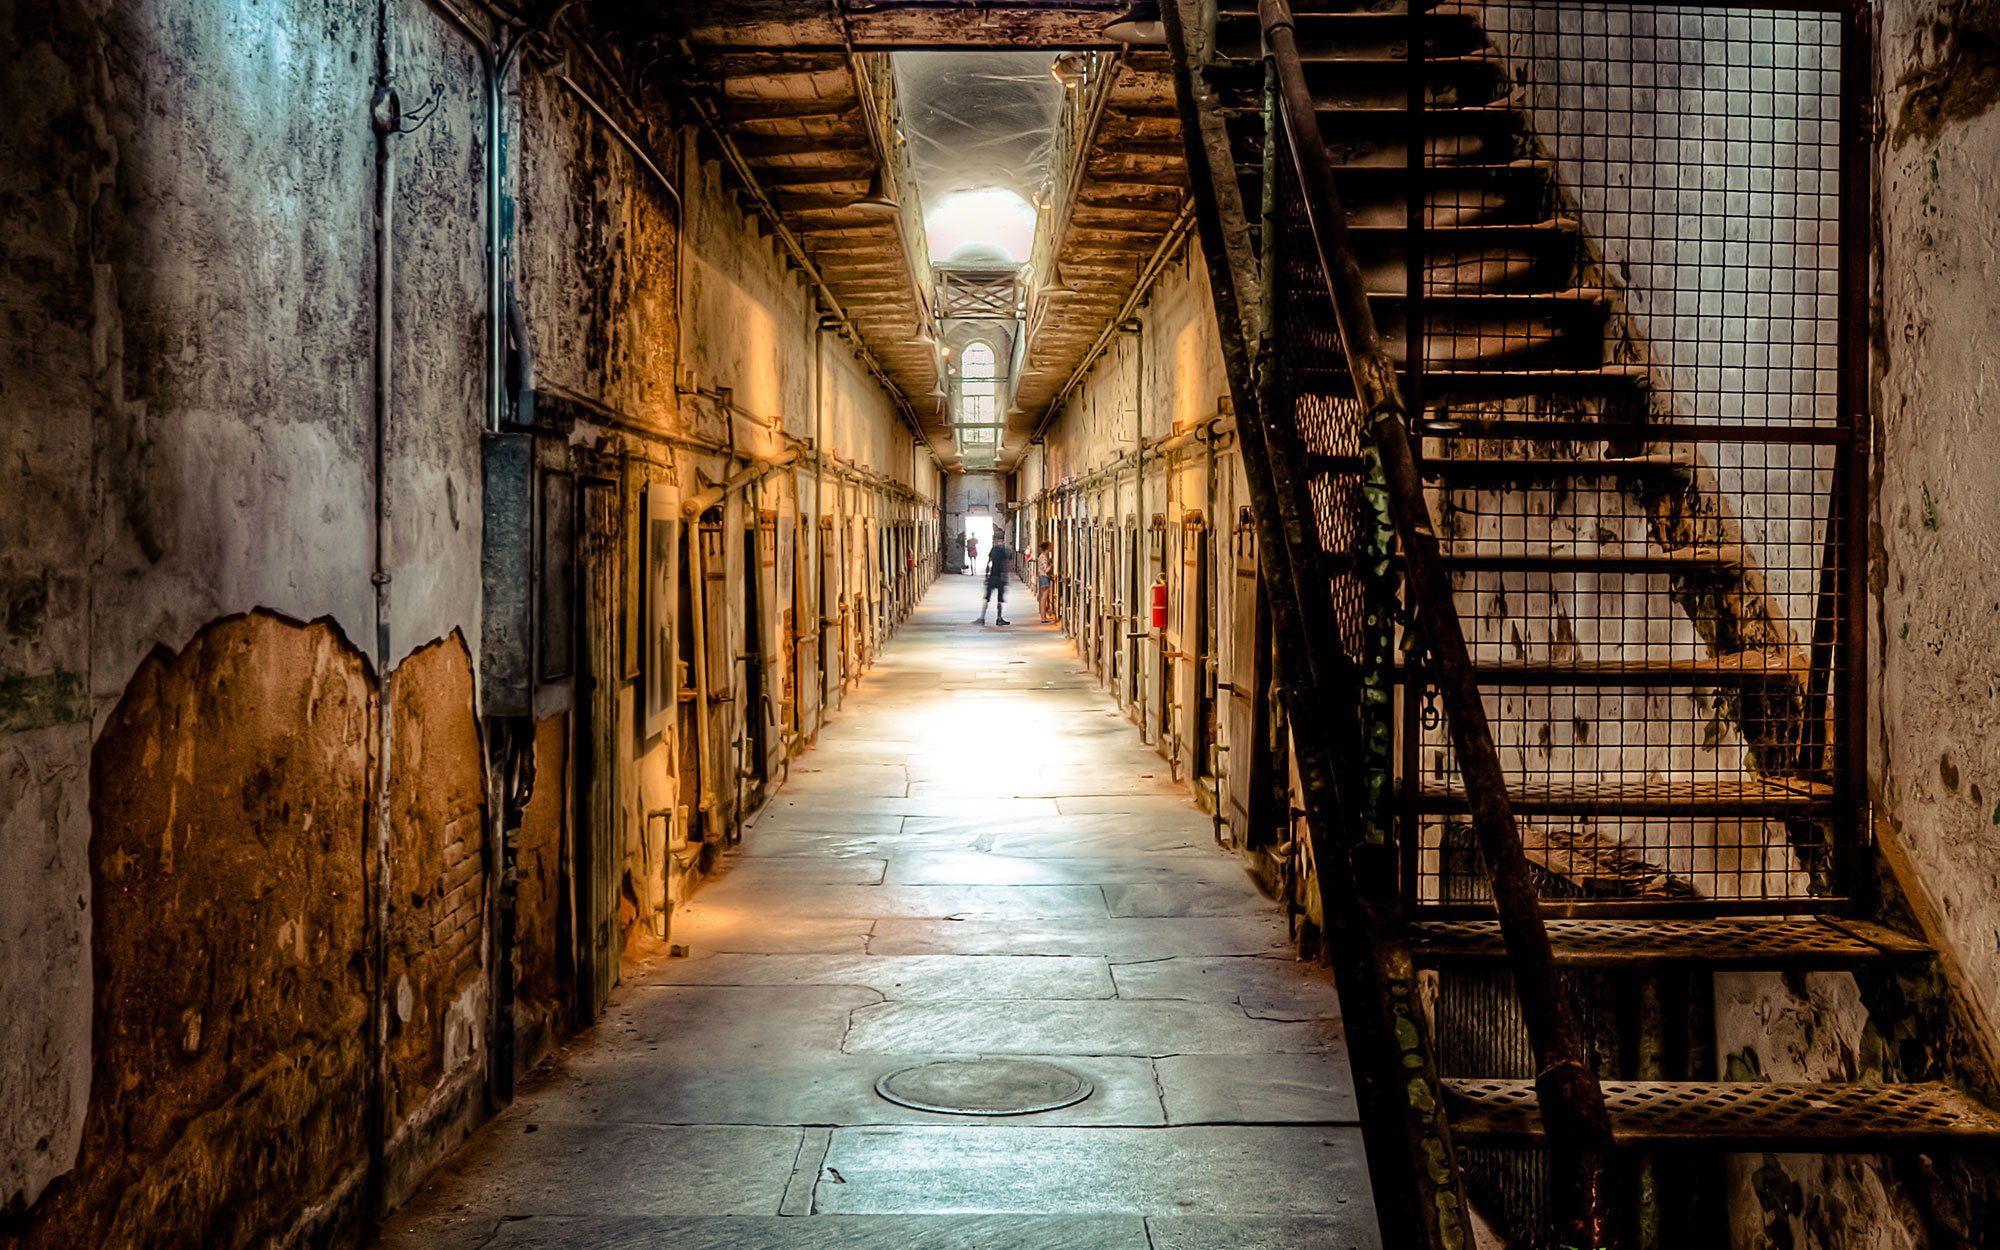 Abandoned Movie Sets You Can Still Visit: 12 Monkeys Set at Eastern State Penitentiary in Philadelphia, Pennsylvania